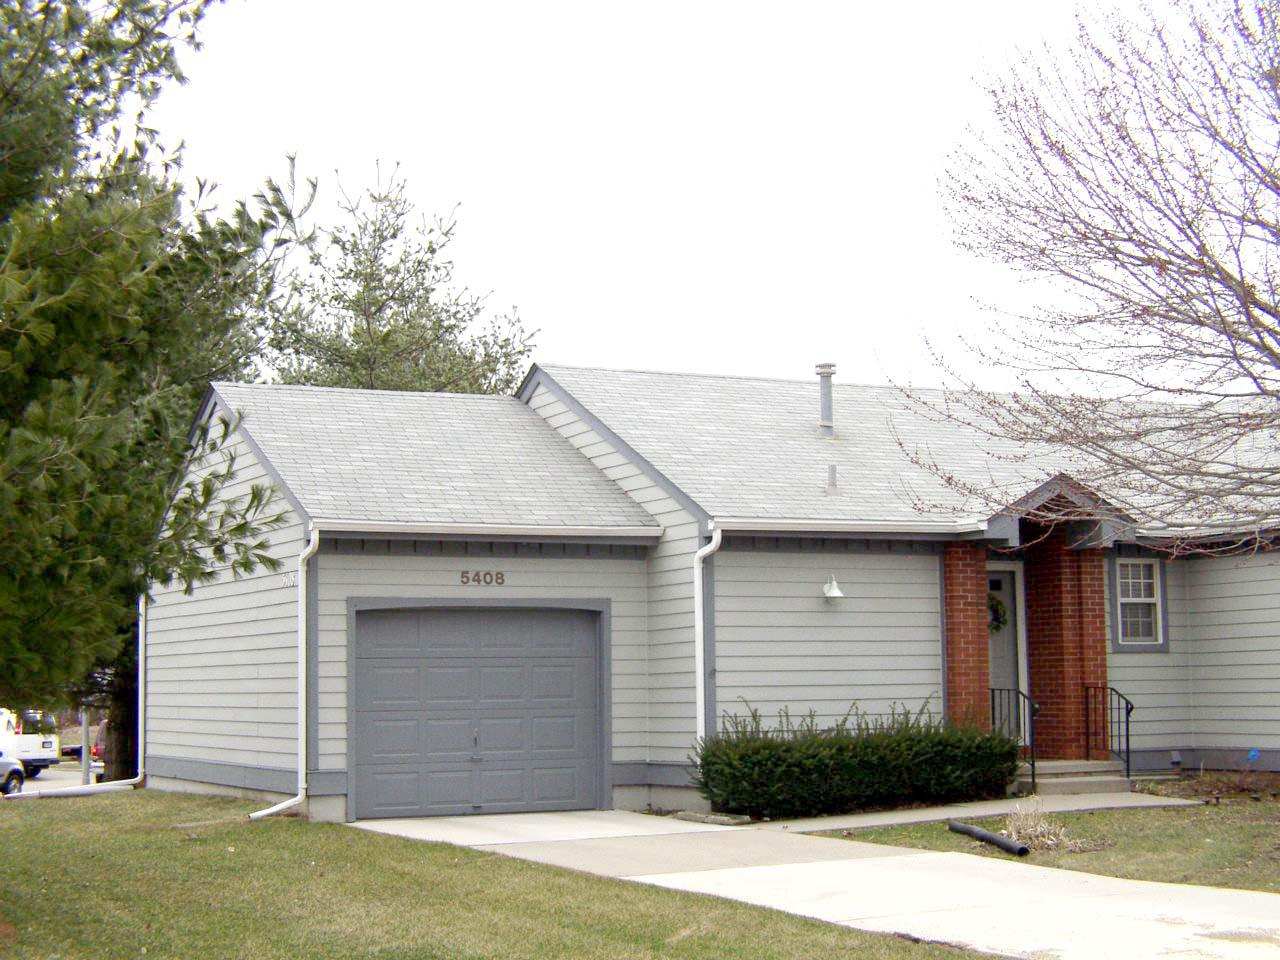 west des moines iowa ia fsbo homes for sale west des moines by owner fsbo west des moines